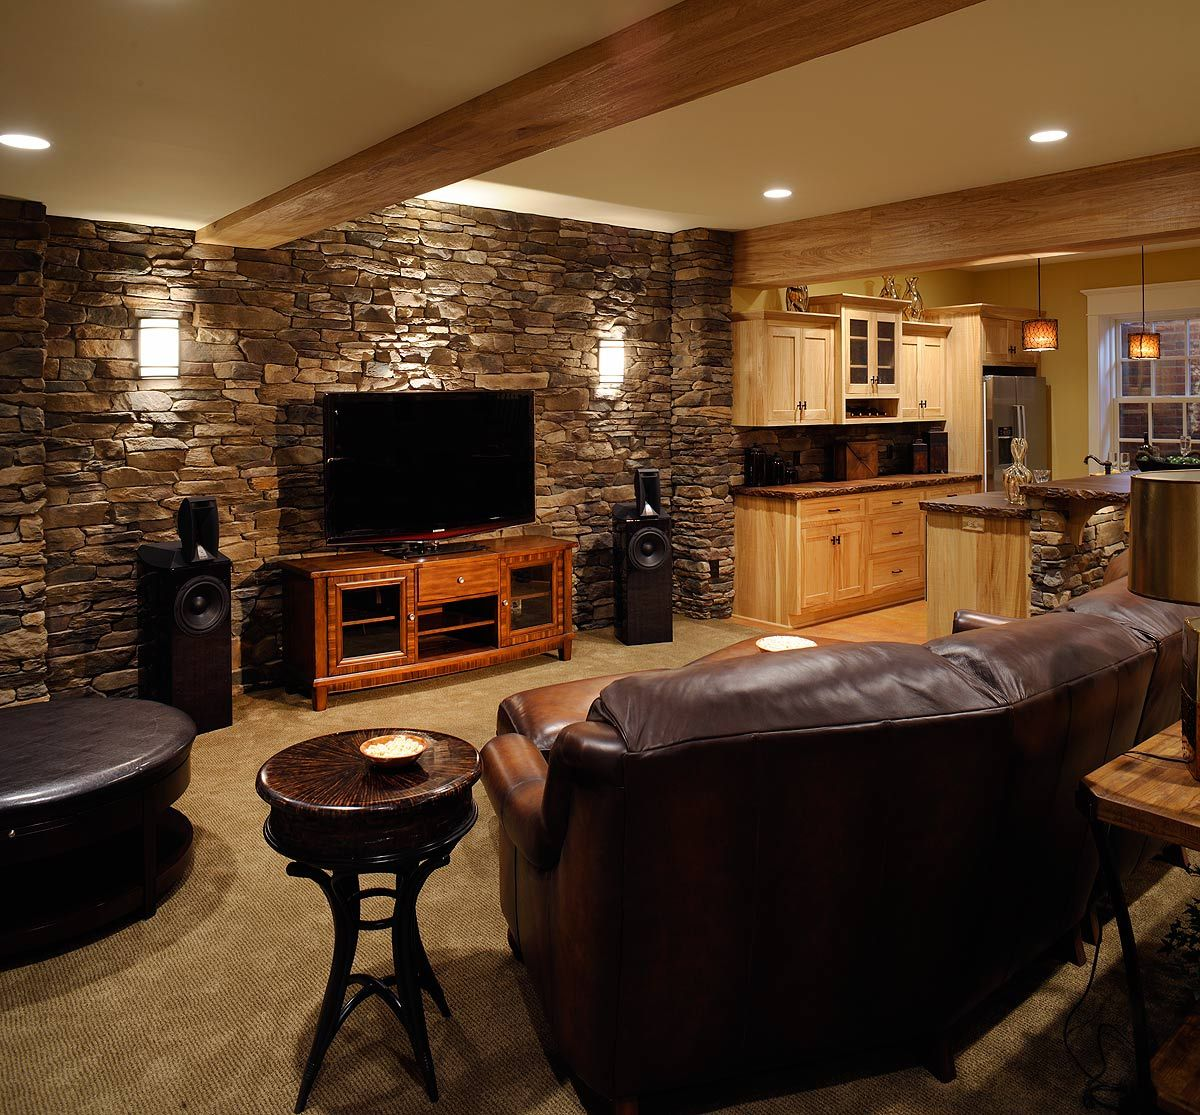 Basement Bar Room Ideas I Like The End Table And The Tv Stand The Rock Is Very